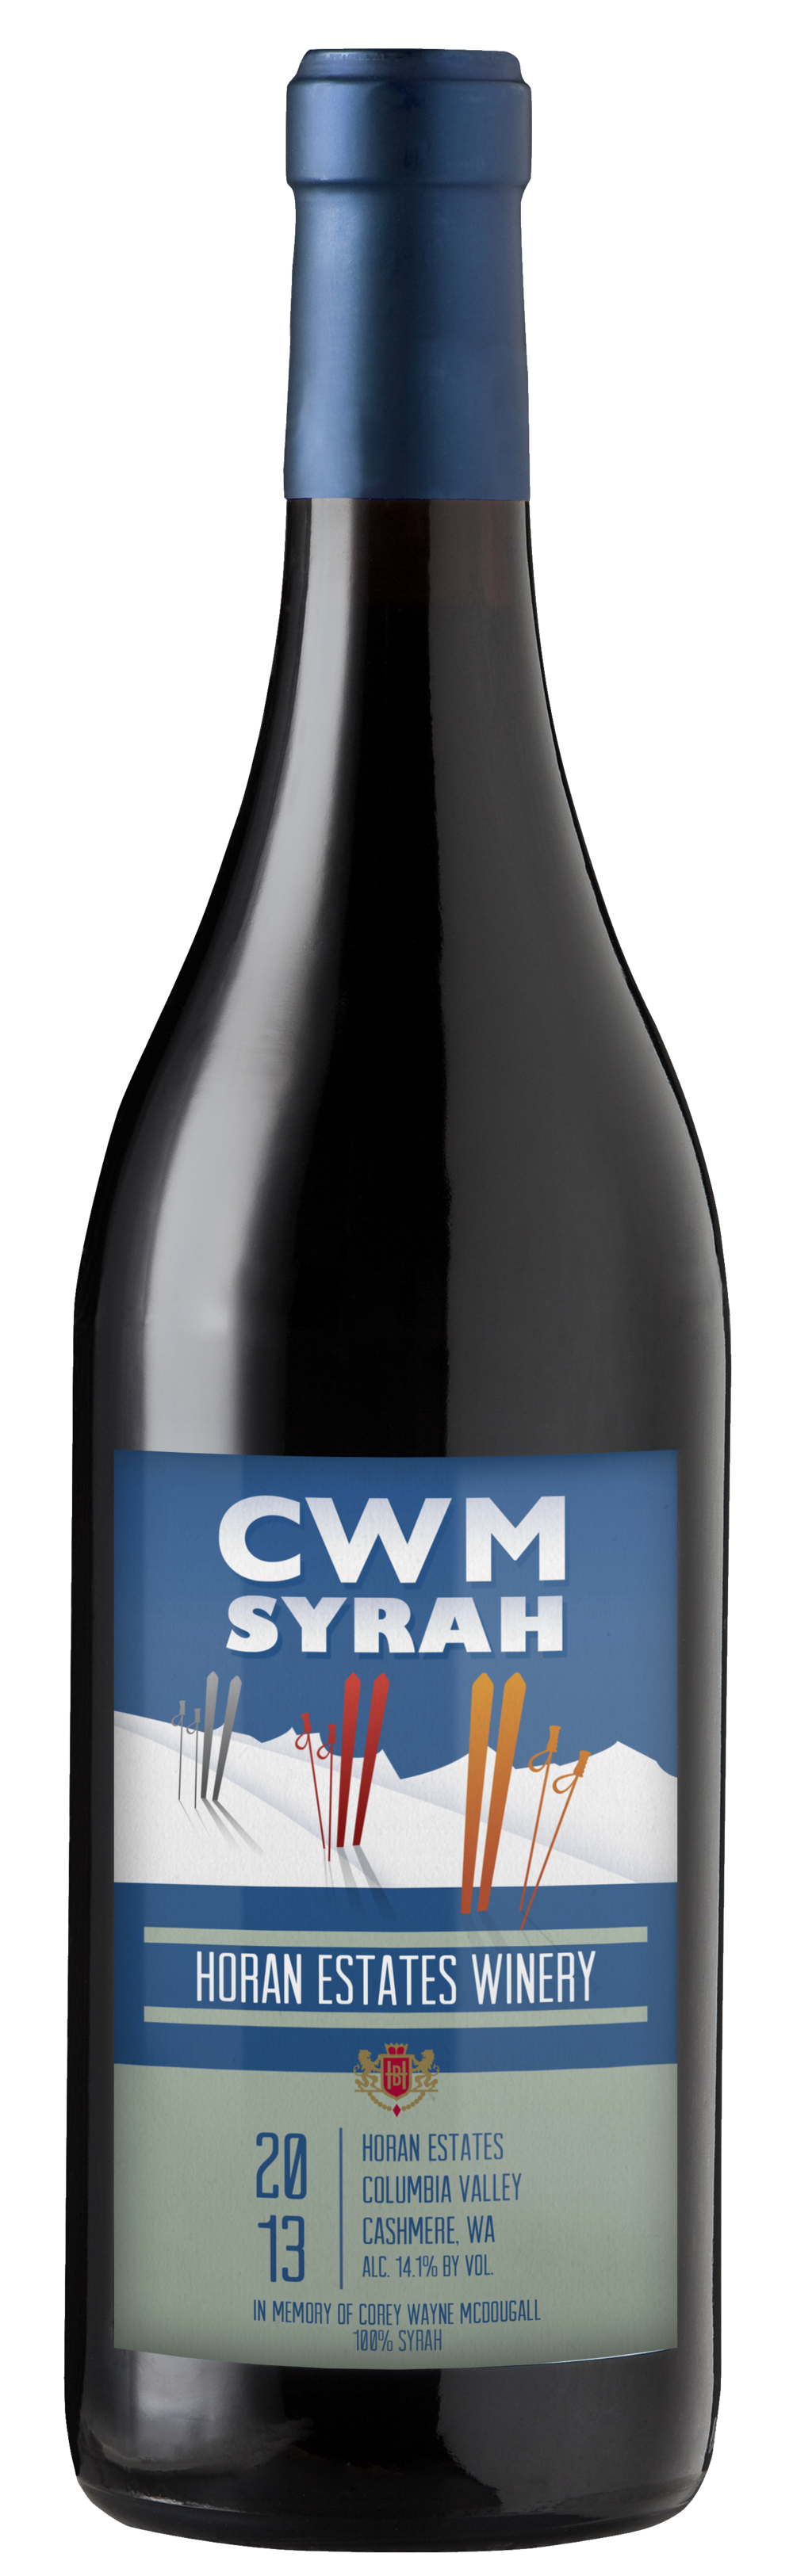 2013_es_syrah_bottle_shot.png